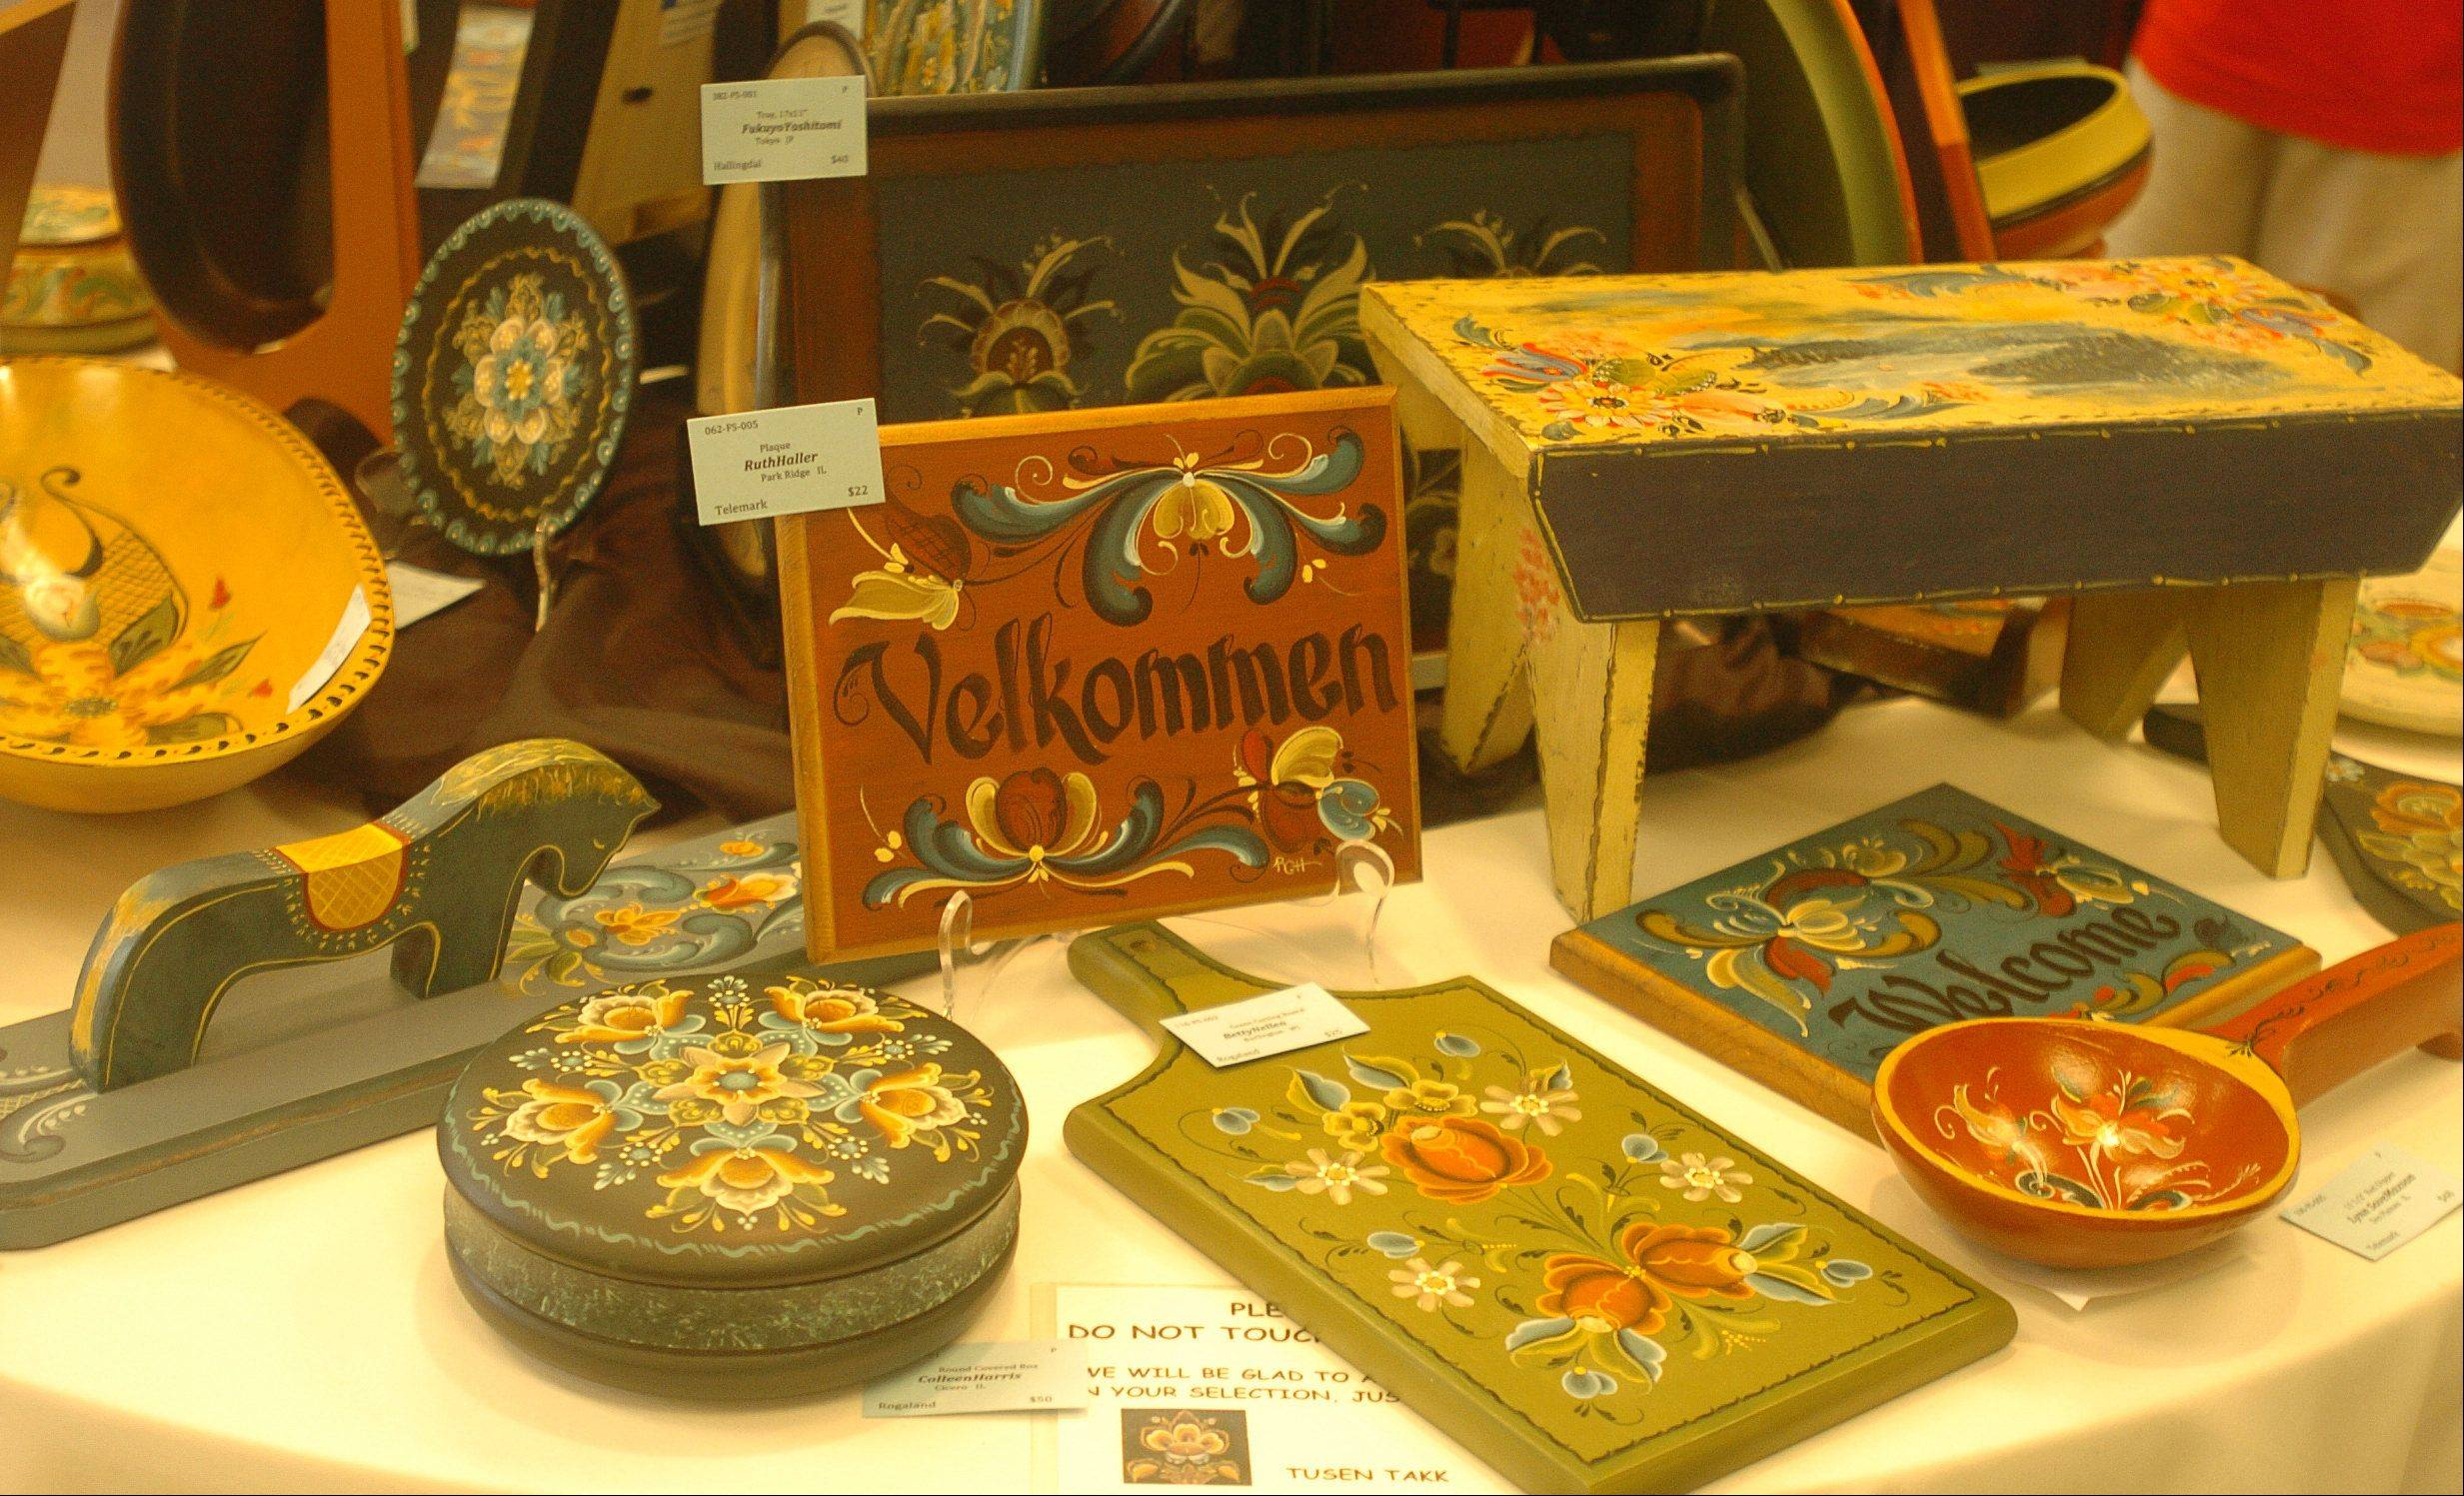 Rosemaling, an Old World style of decorative folk painting, will be showcased at a show set for 10 a.m. to 5 p.m. Wednesday through Saturday, June 20-23, at Swedish Days. The show is hosted by the Geneva History Center.